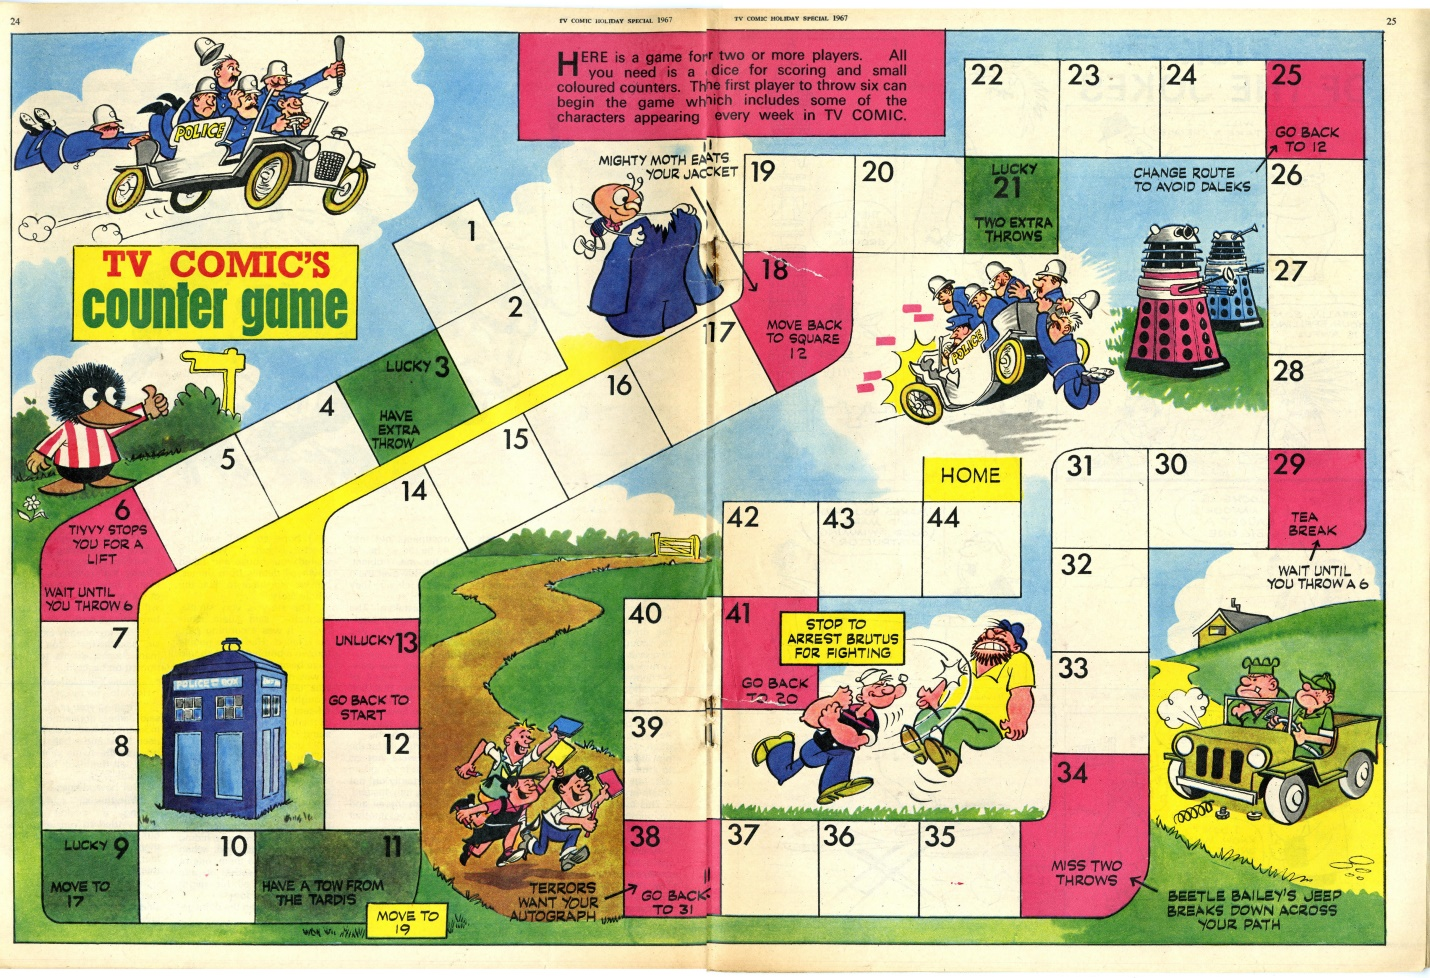 Counter game in TV Comic Holiday Special 1967